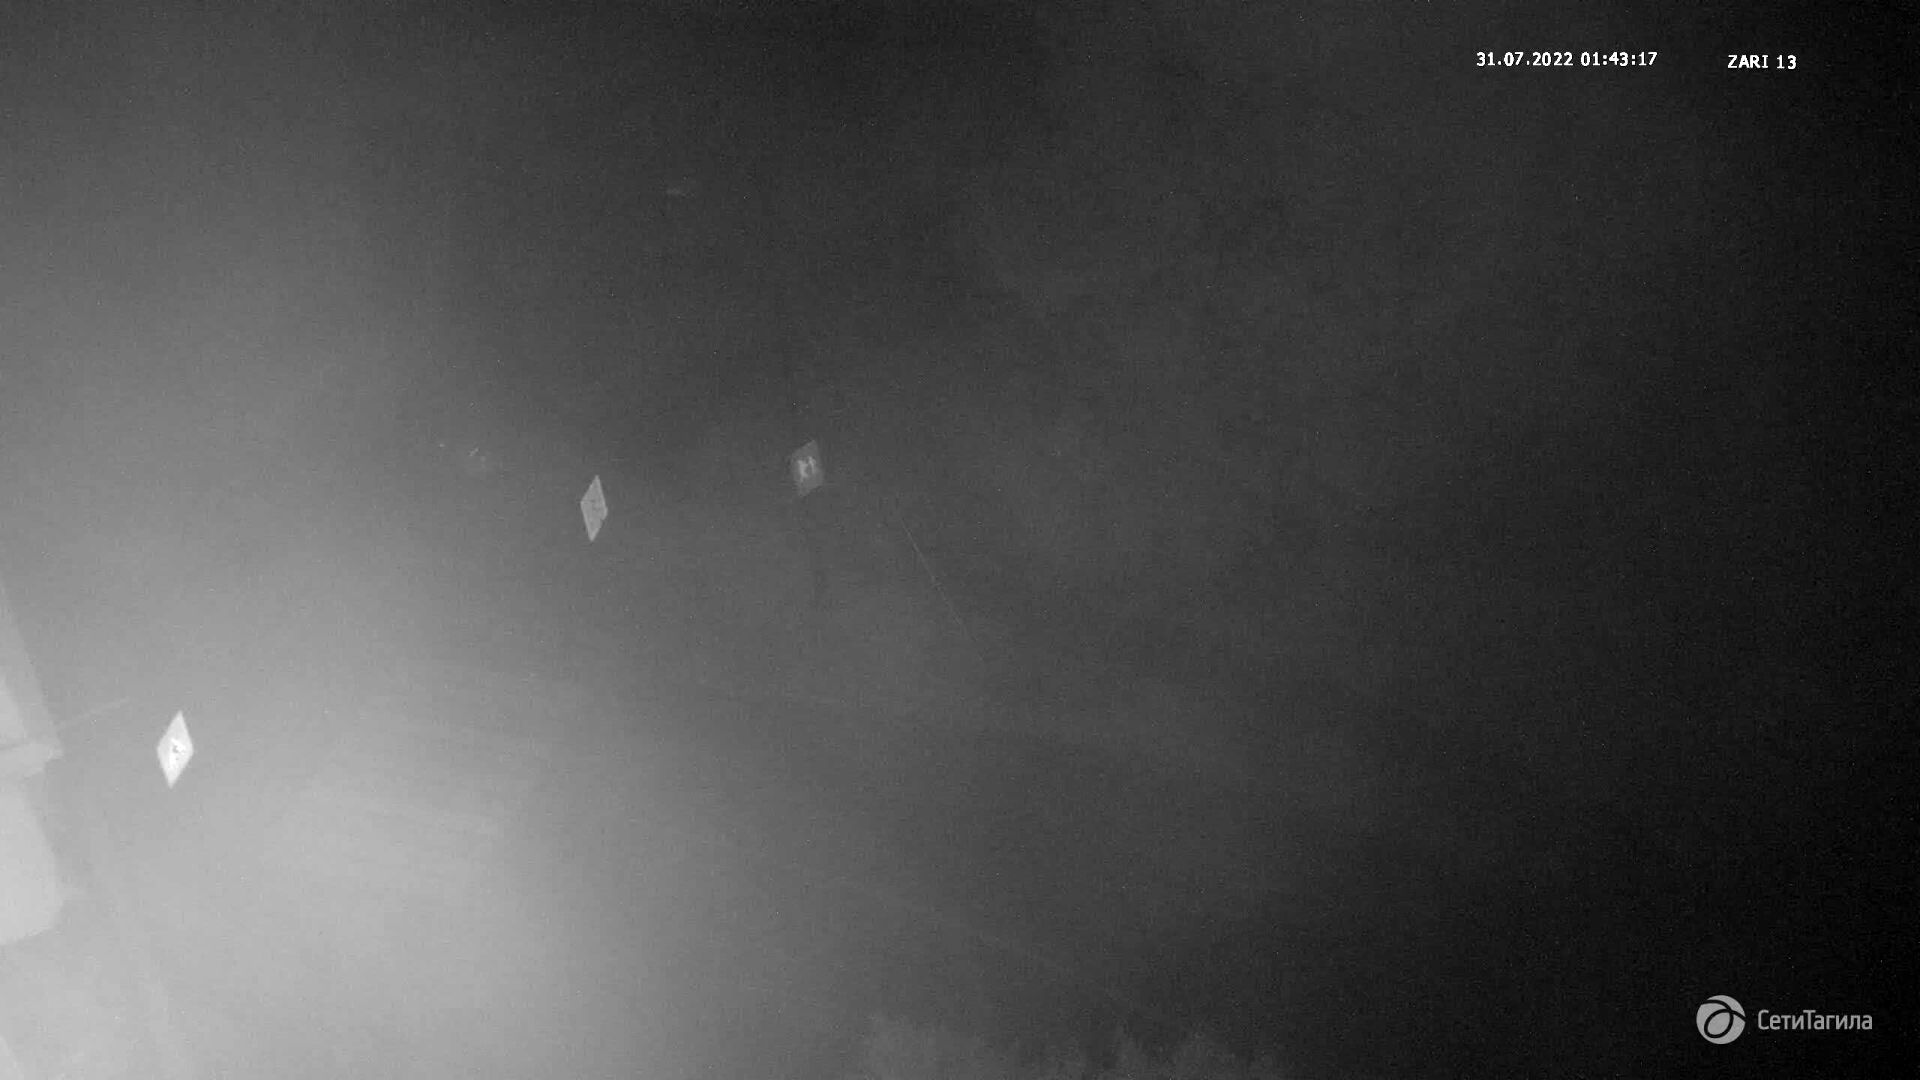 Webcam crossroad at school N 8 (camera 1), Nizhny Tagil, Sverdlovsk Region, Russia